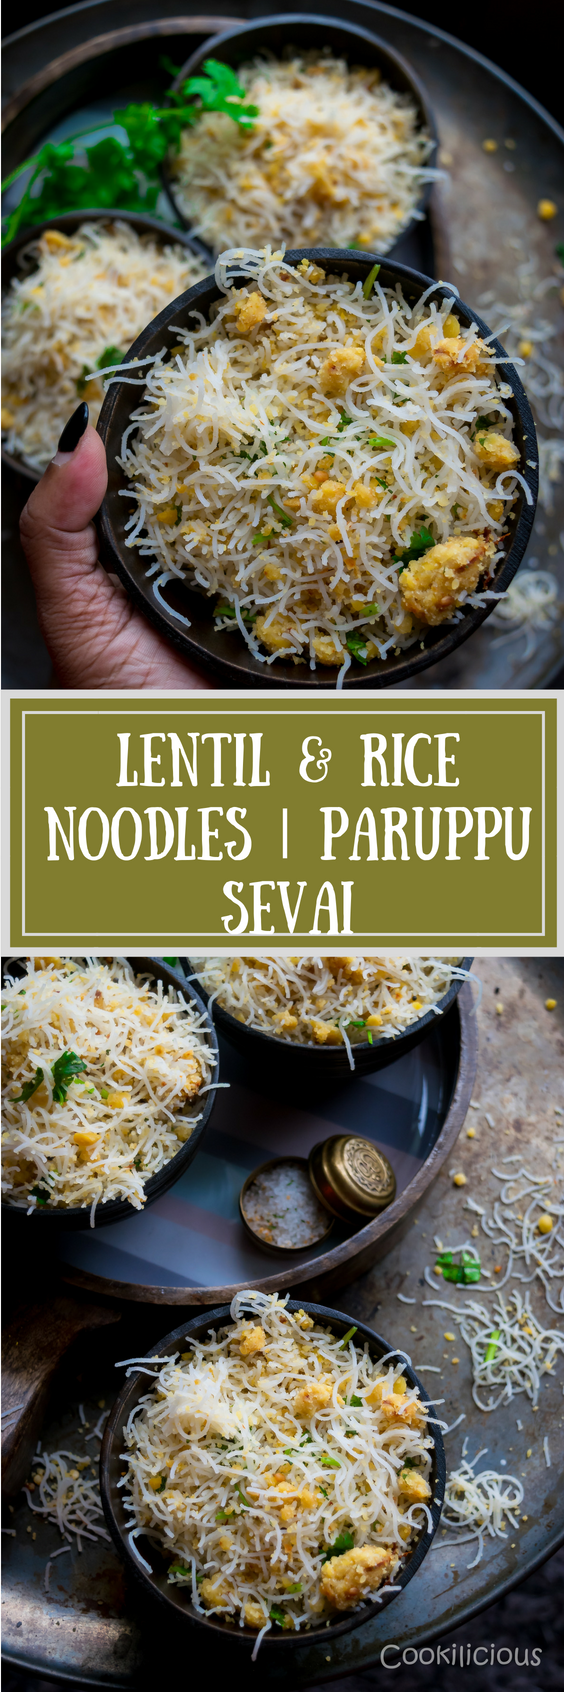 2 images of Lentil & Rice Noodles | Paruppu Sevai with text in the middle